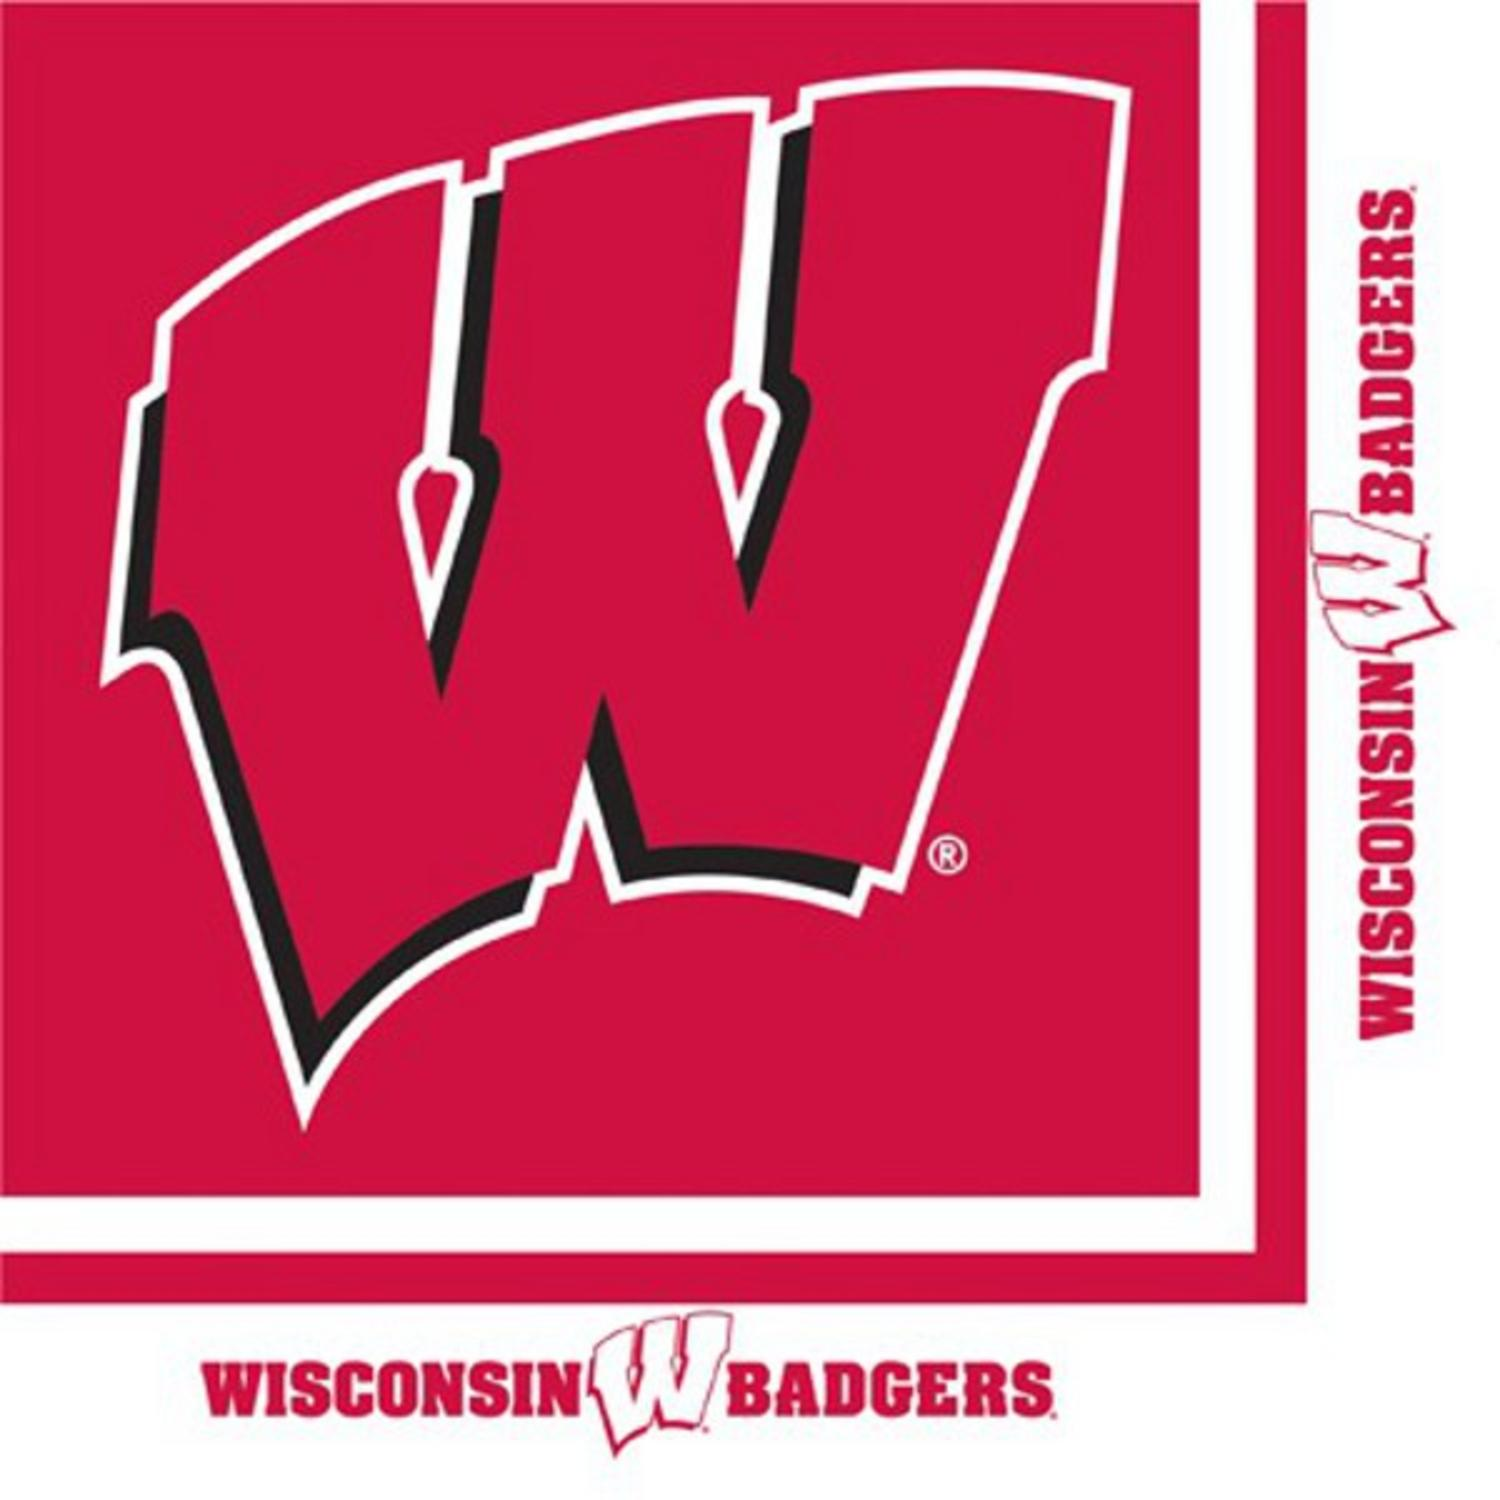 Club Pack of 240 NCAA Wisconsin Badgers 2-Ply Tailgating Party Lunch Napkins